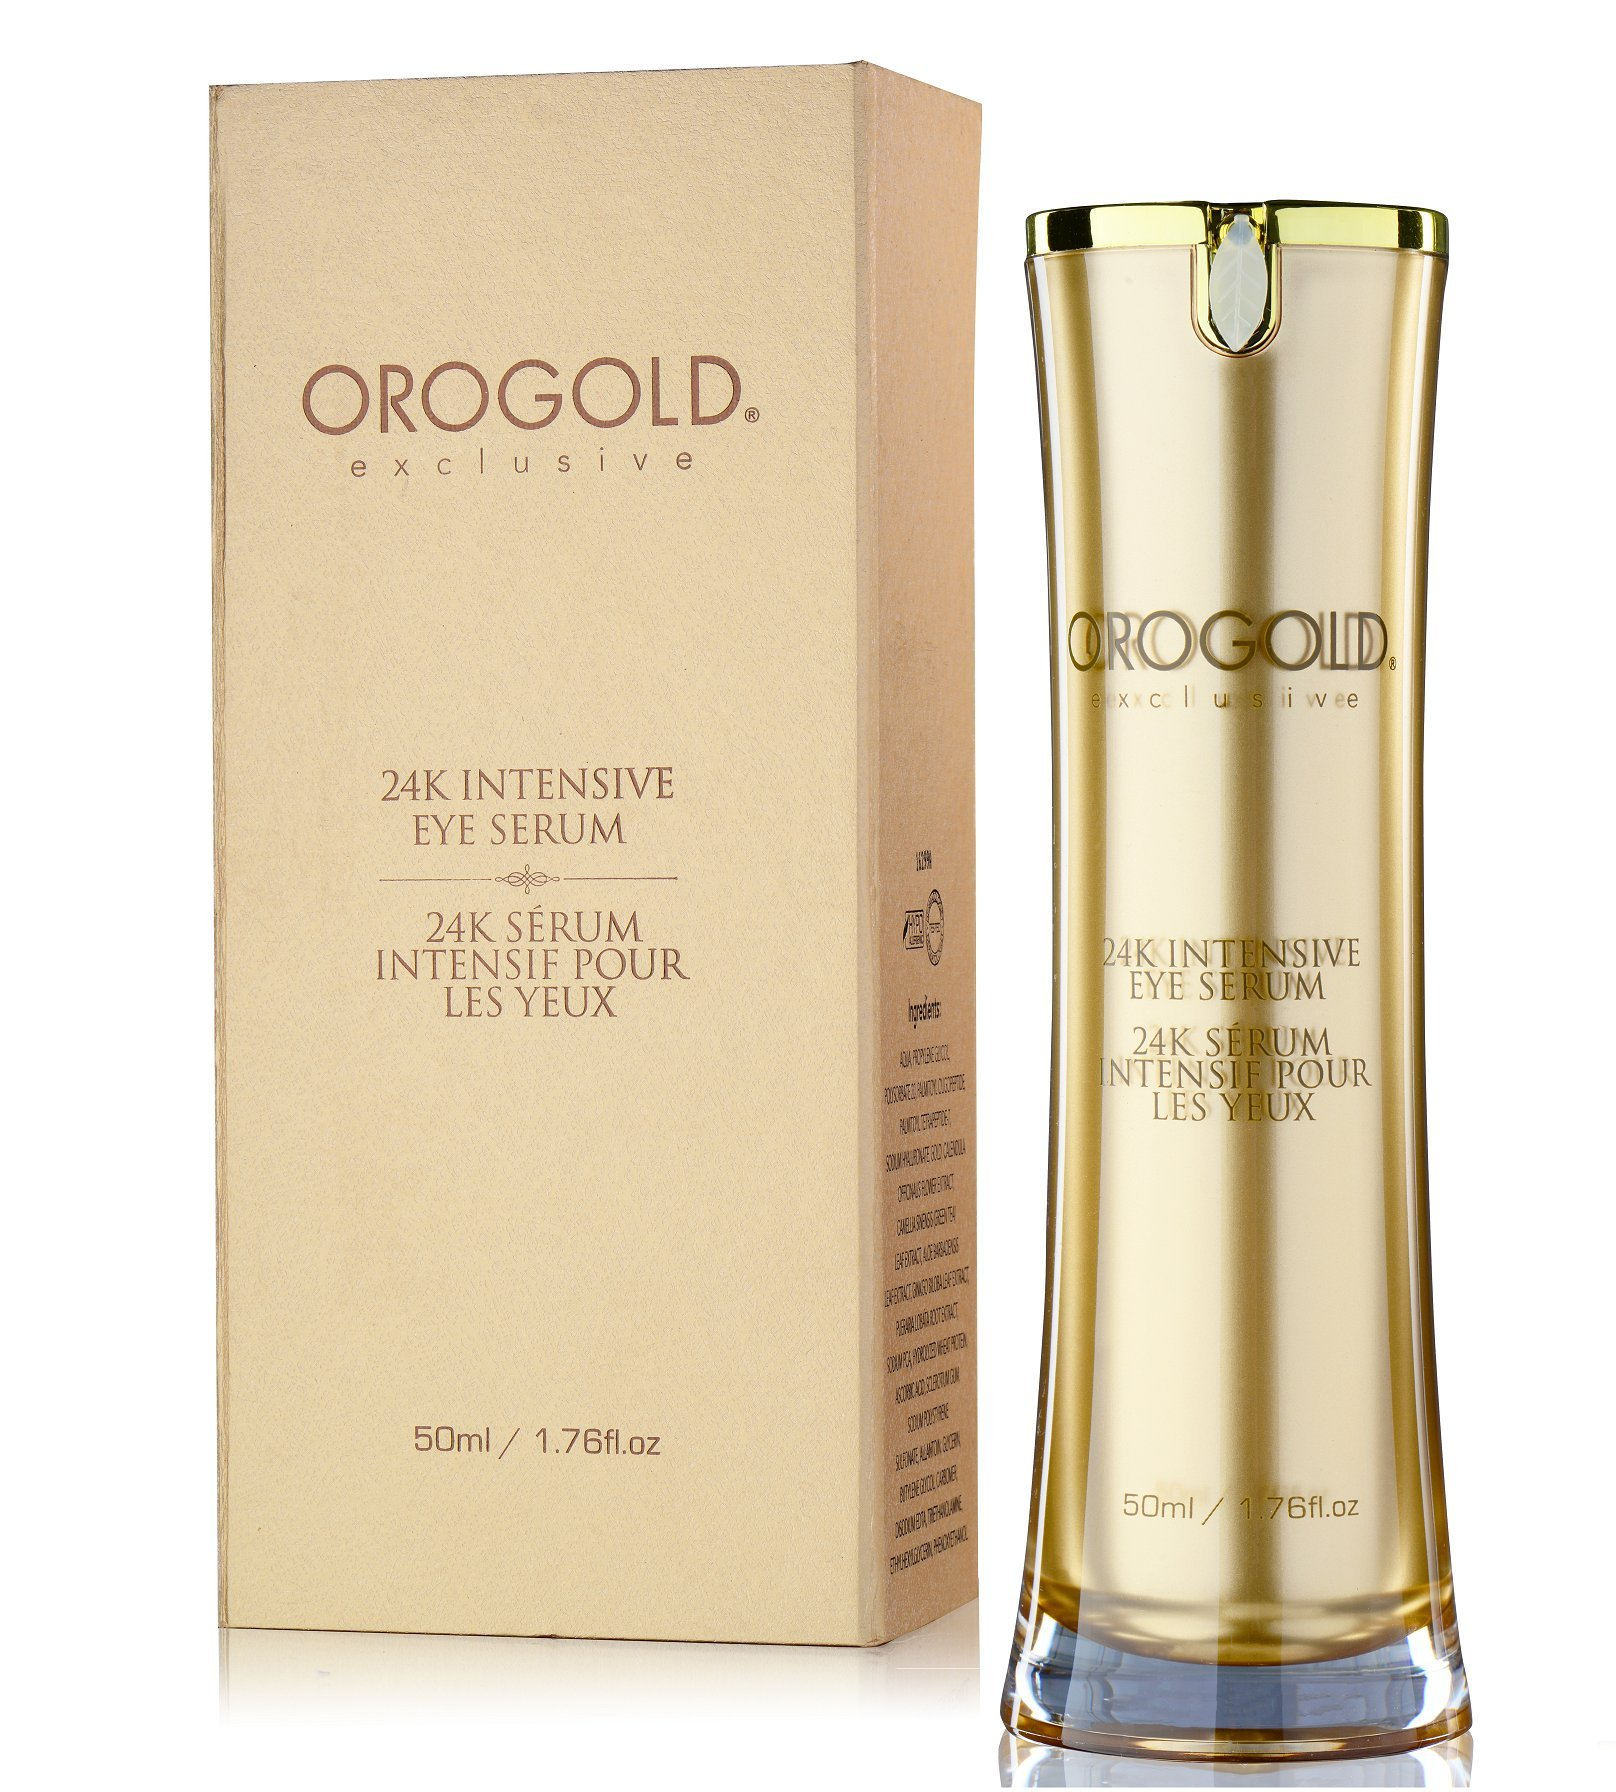 OROGOLD 24K Eye Serum for Wrinkles, Dark Circles and Puffiness | Gold Standard Is The Only Standard